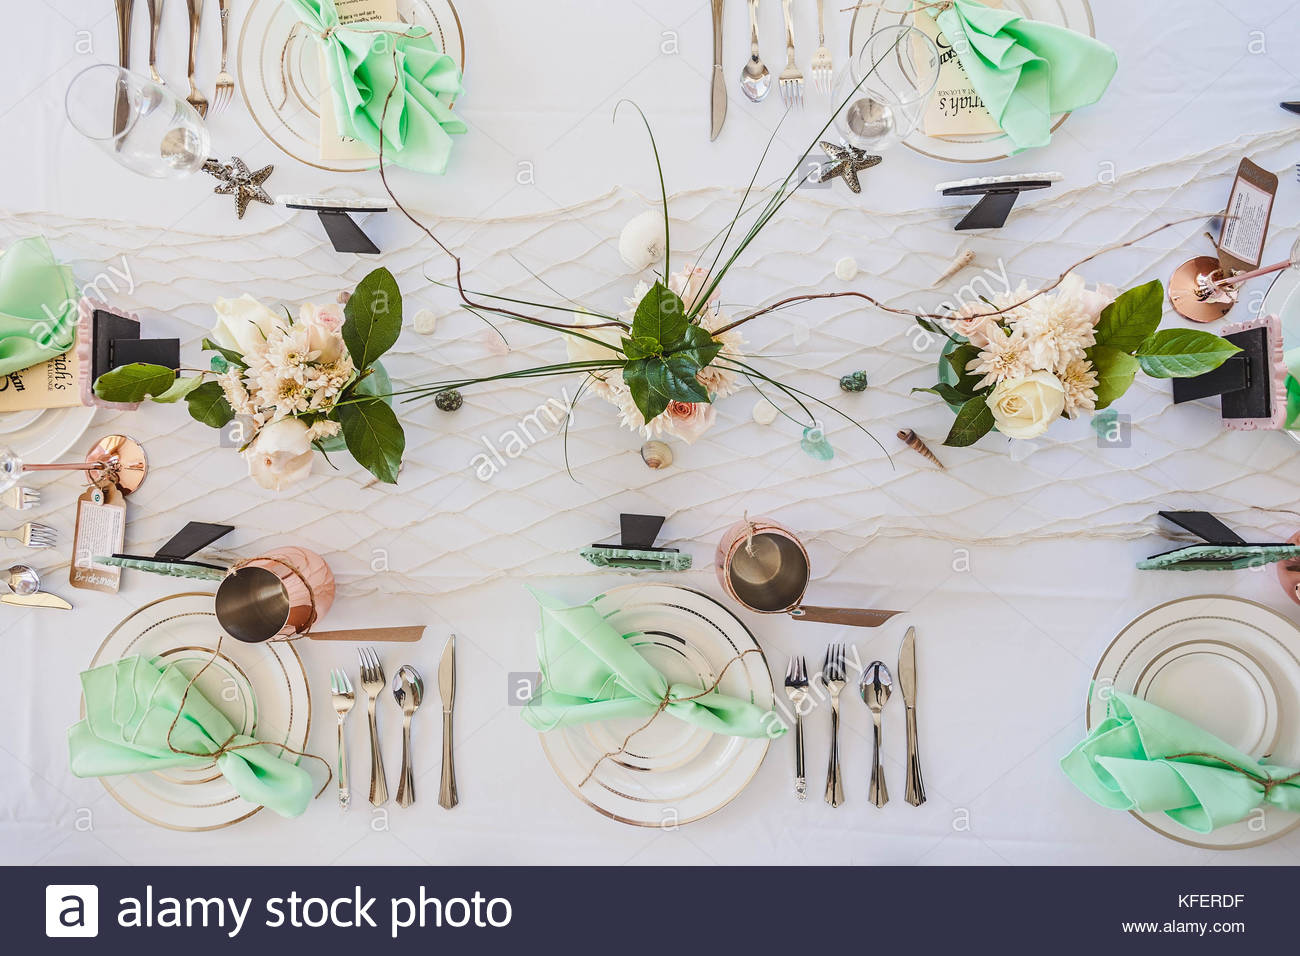 elegant beach themed wedding table setting with mint green napkins kferdf accent and copper mugs scattered seashells stars fishnet runner side decor grey rug target slab dining